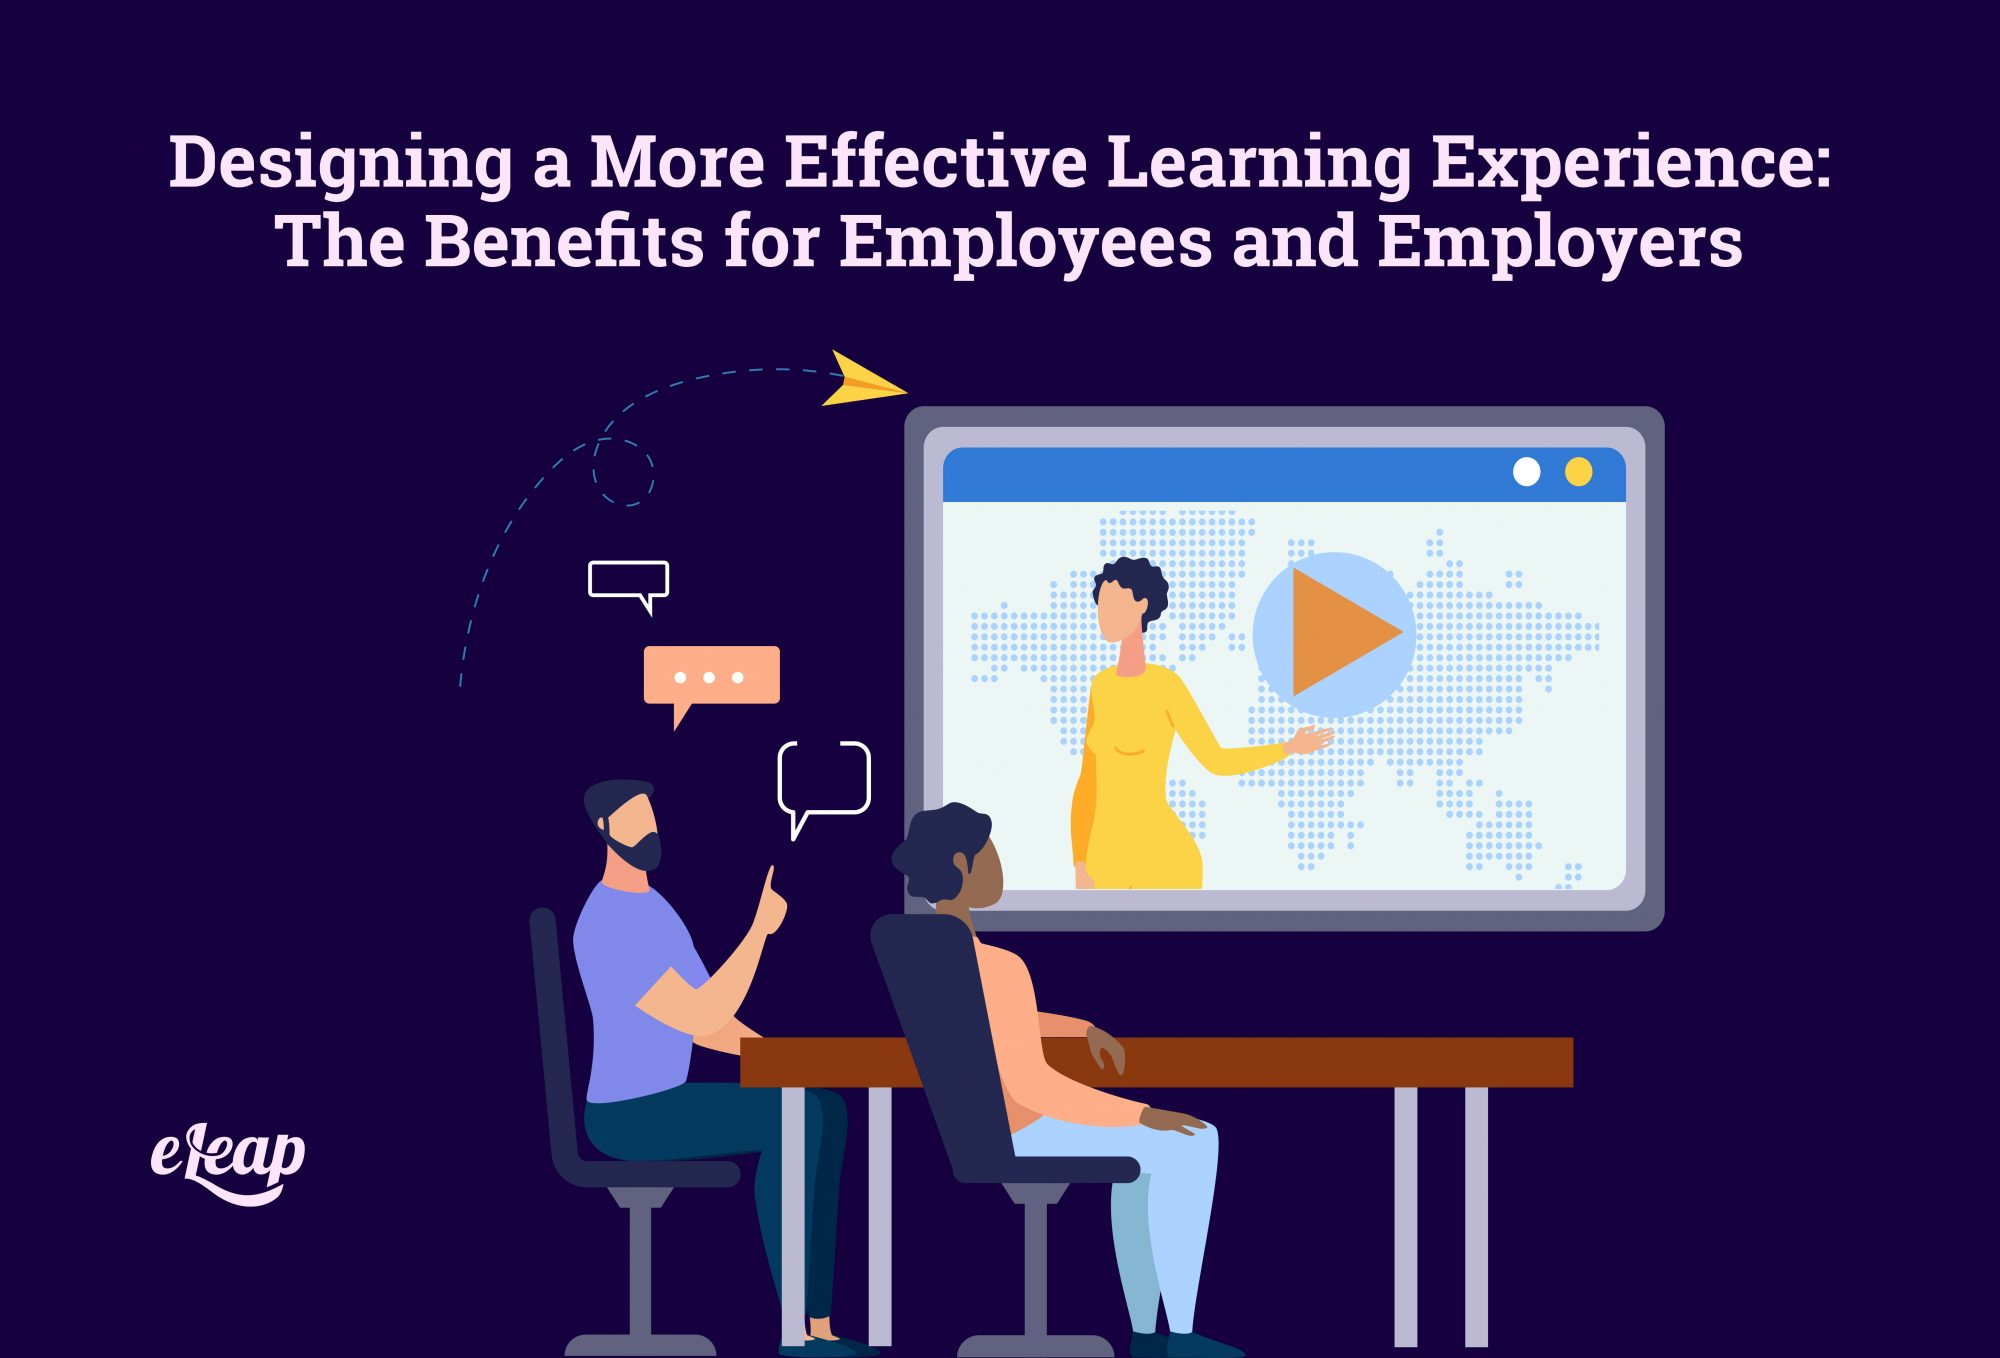 Designing a More Effective Learning Experience: The Benefits for Employees and Employers